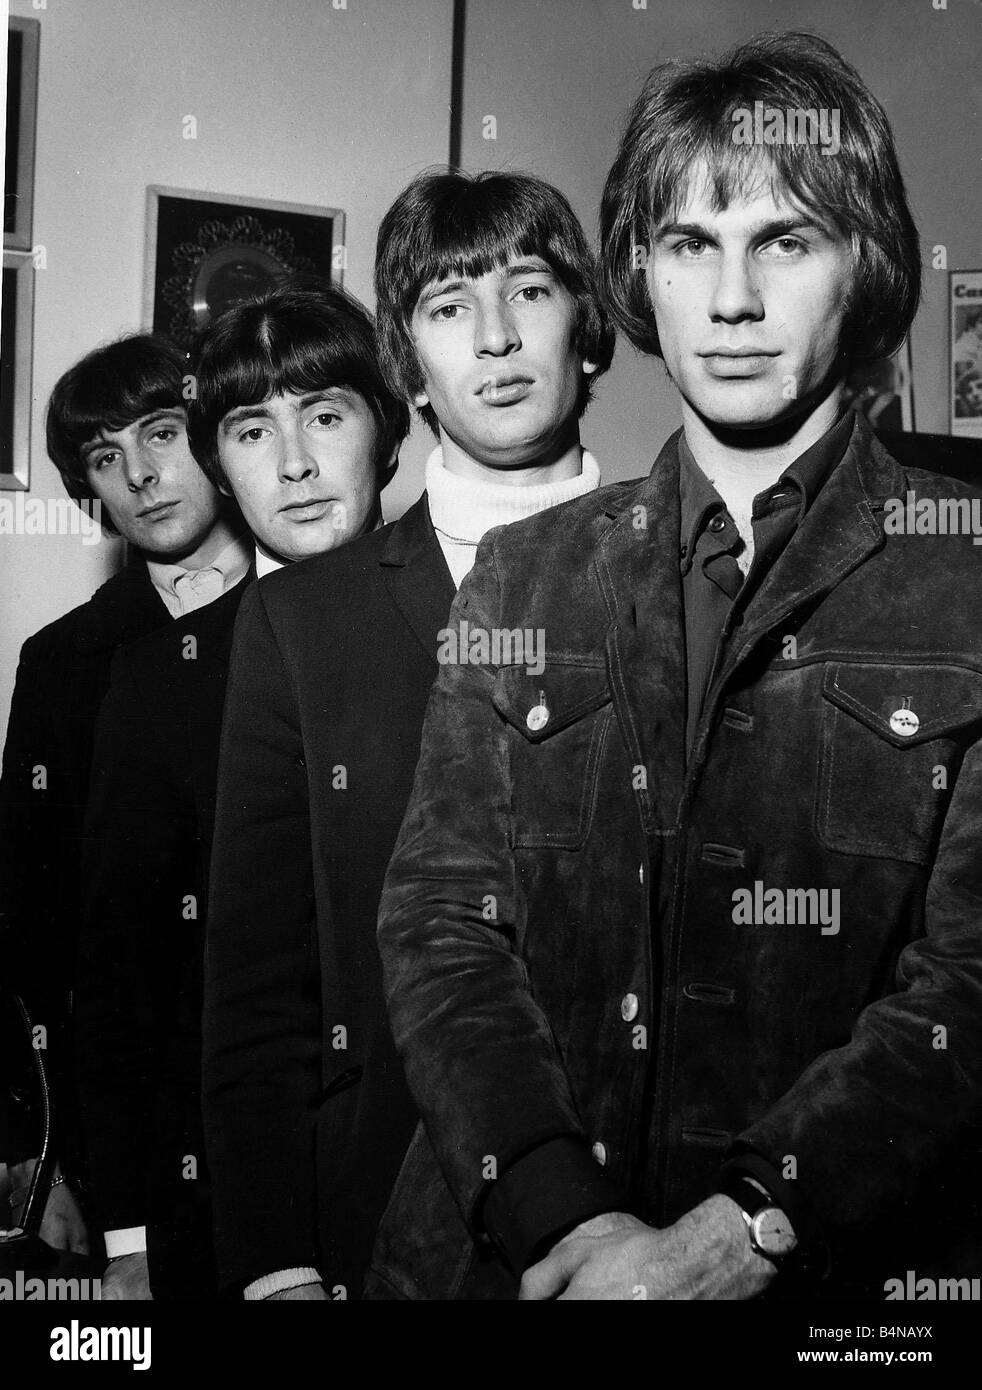 Le groupe Sixties pop britannique The Troggs dans Profil 1967 Photo Stock